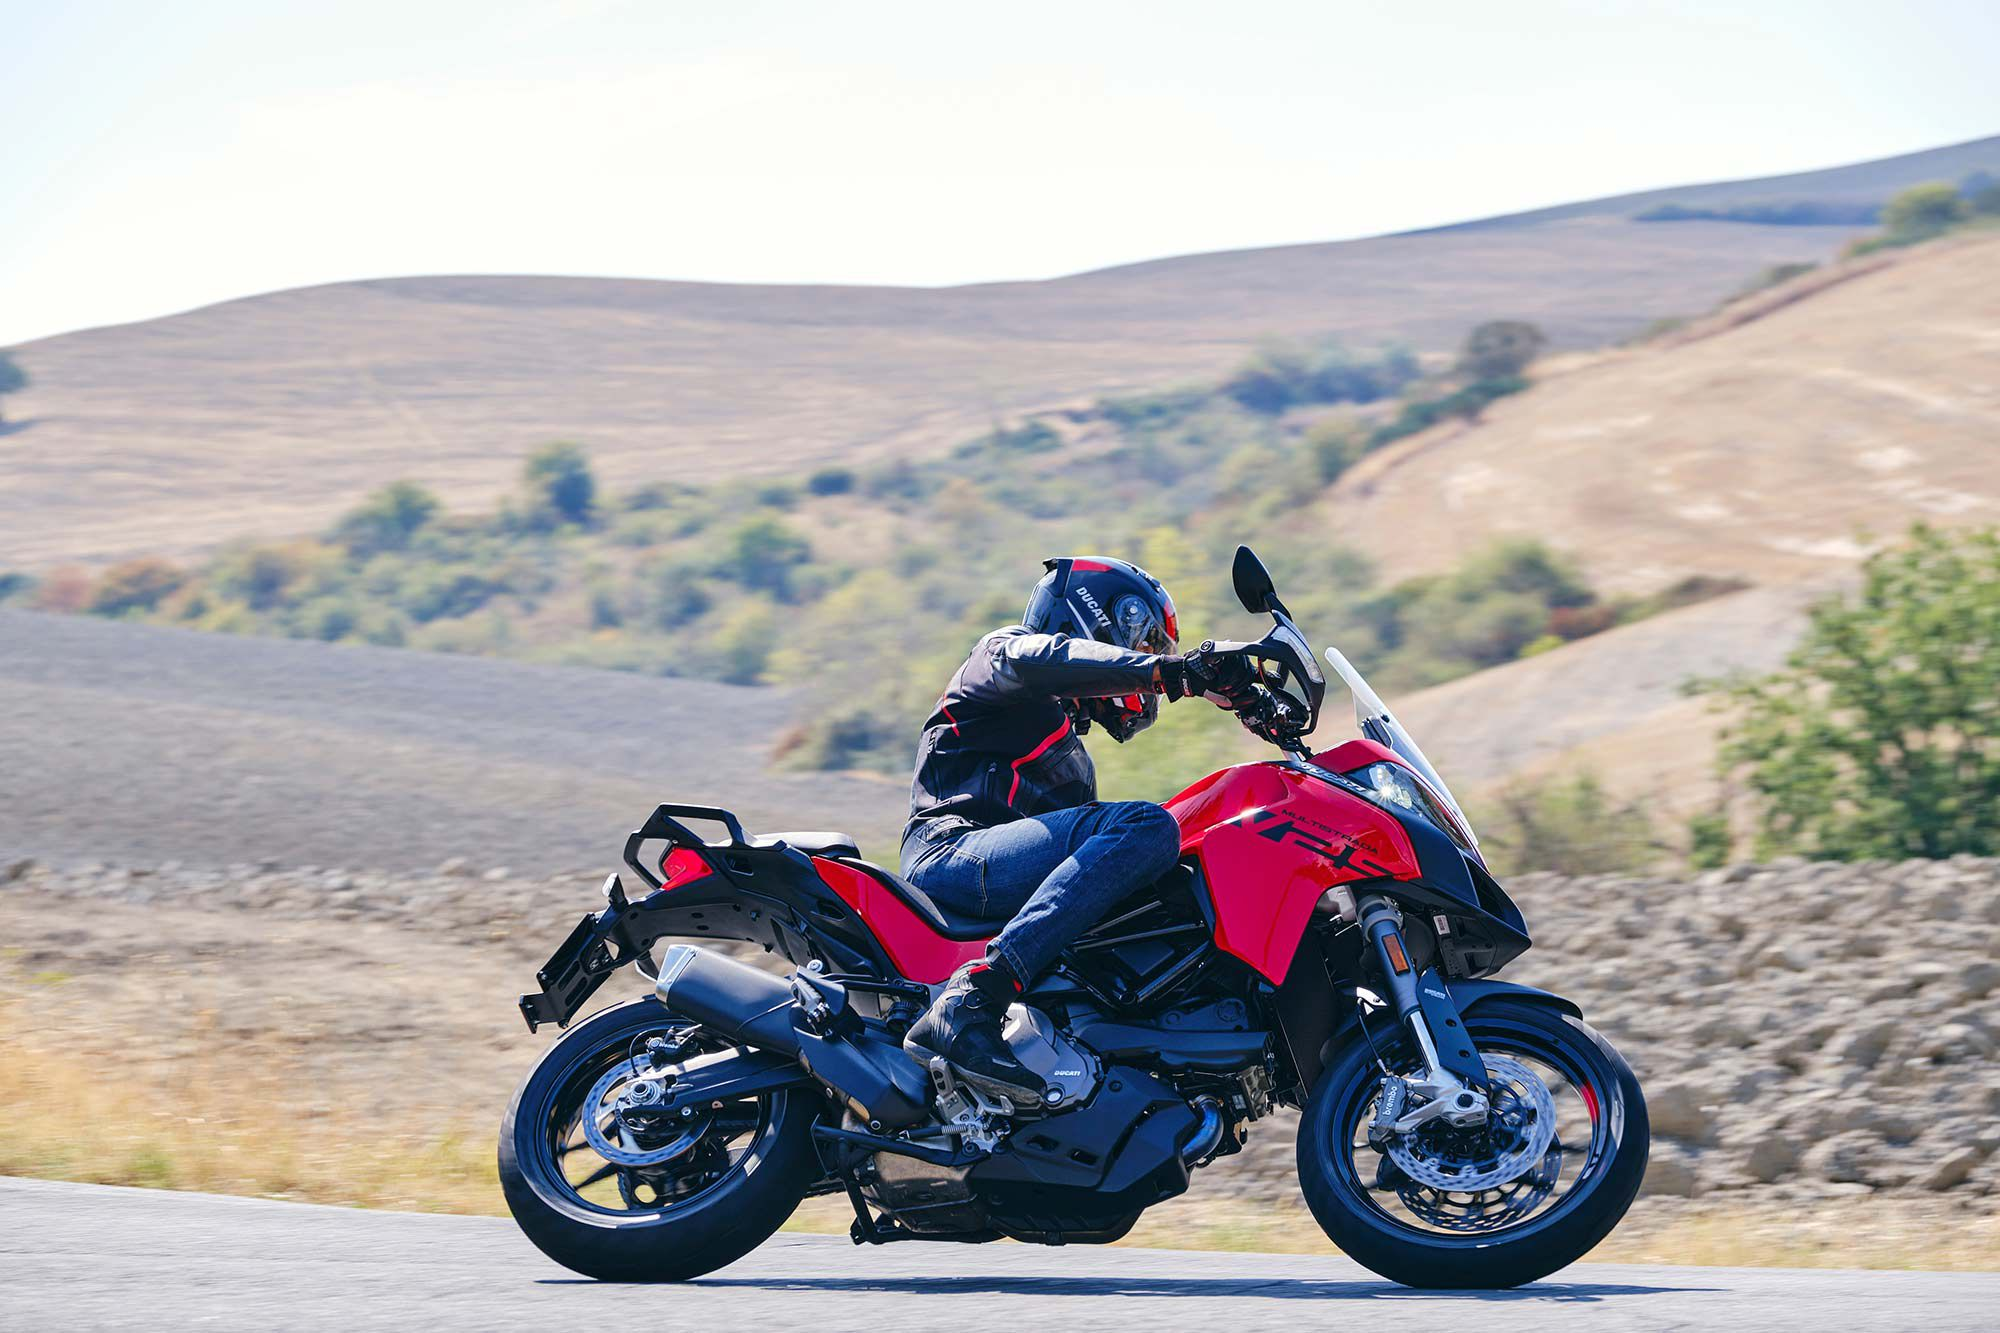 A host of electronic aids including Cornering ABS come standard on both versions of the Multistrada V2.